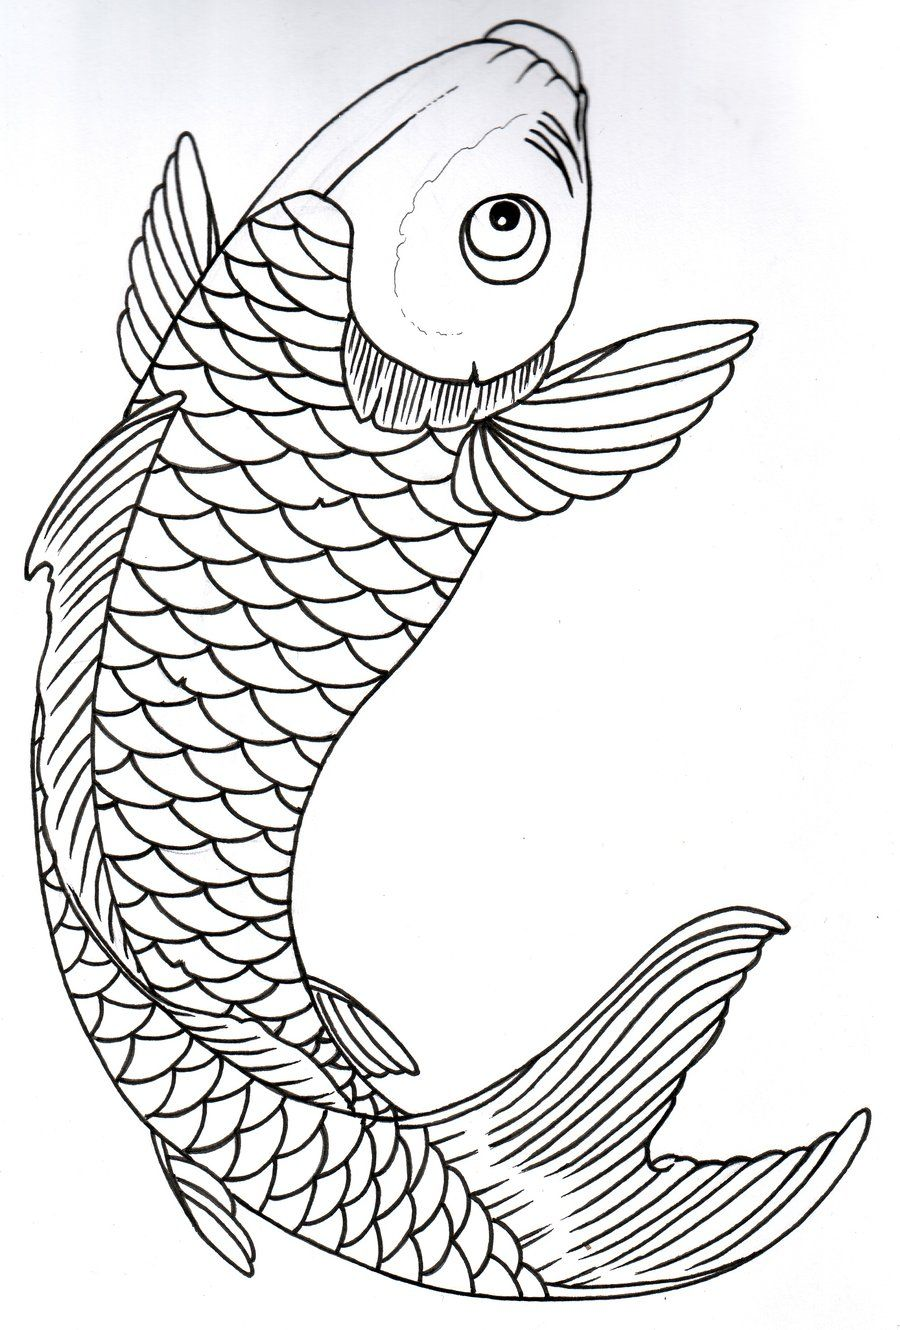 Koi fish tattoos outline google search drawings for Koi fish pond drawing